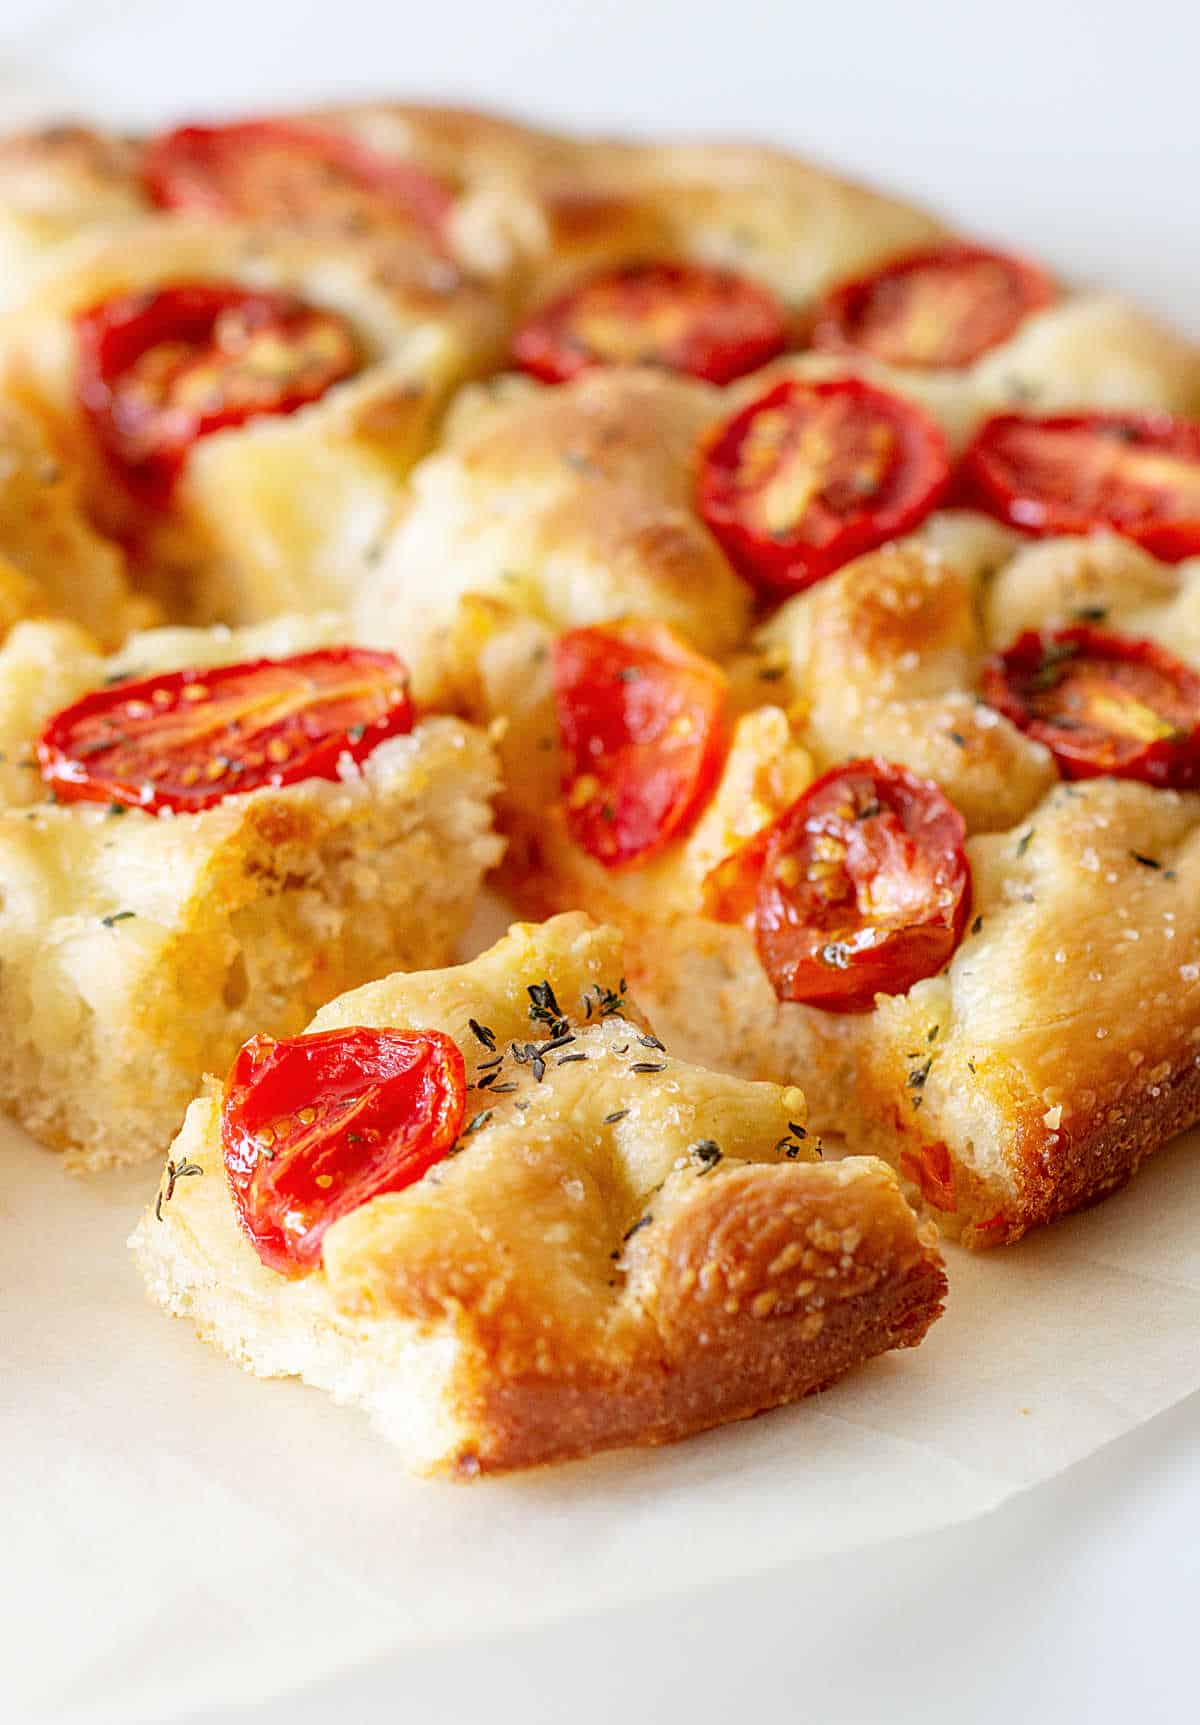 Tomato focaccia cut in squares on white surface